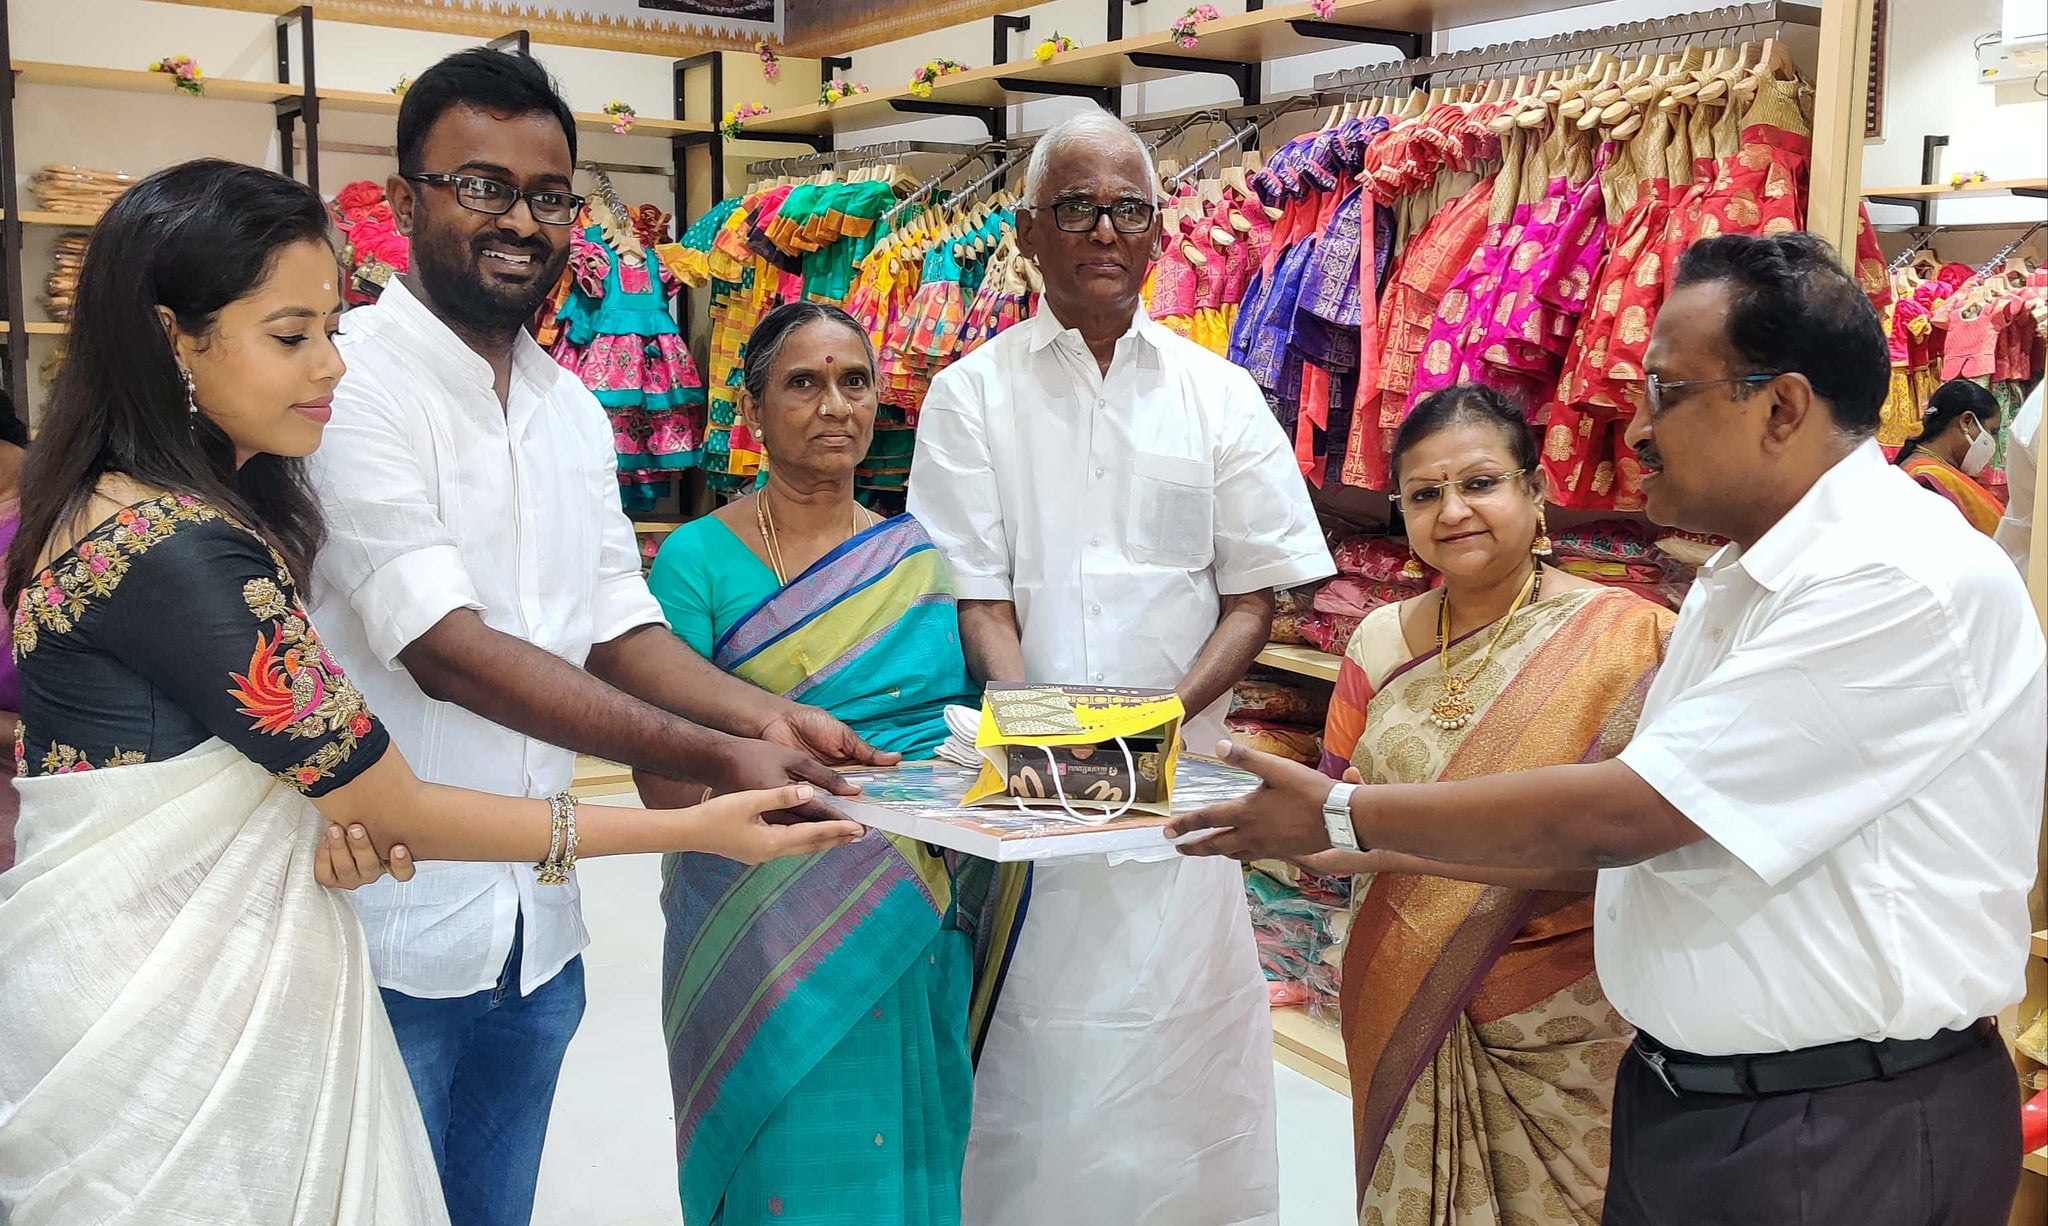 Our-esteemed-guests-at-opening-of-our-store-the-nesavu-ps-rangasami-chairman-psr-silks